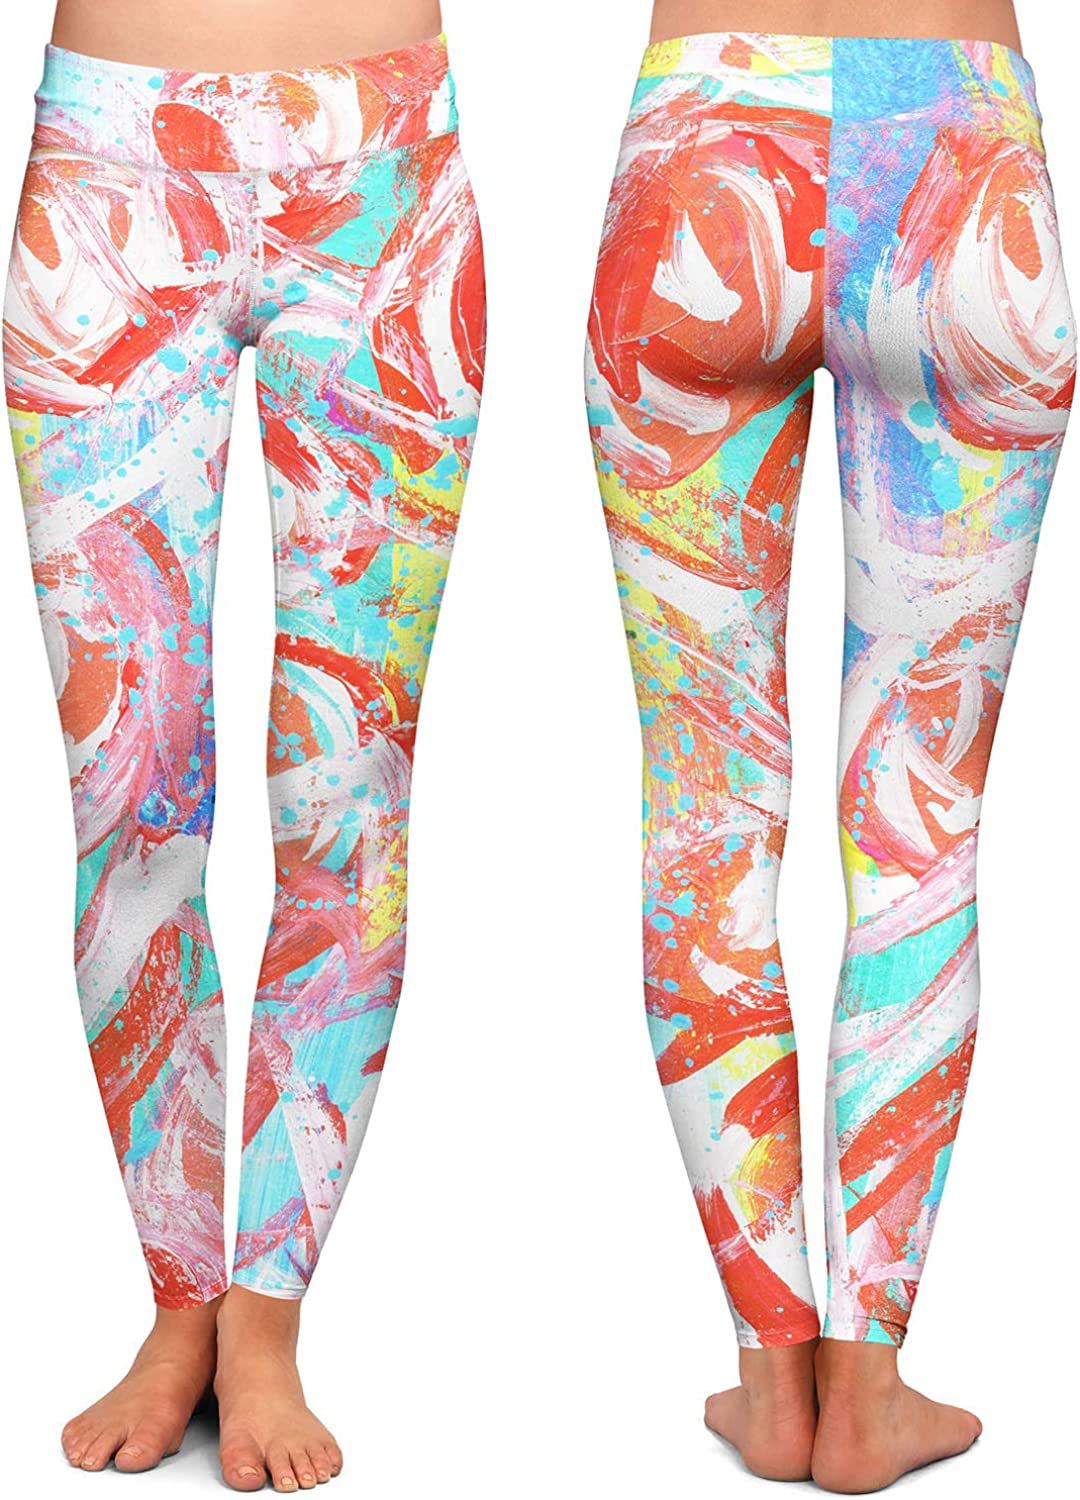 Smarty Pants Athletic Yoga Leggings from DiaNoche Designs by Shay Livenspargar